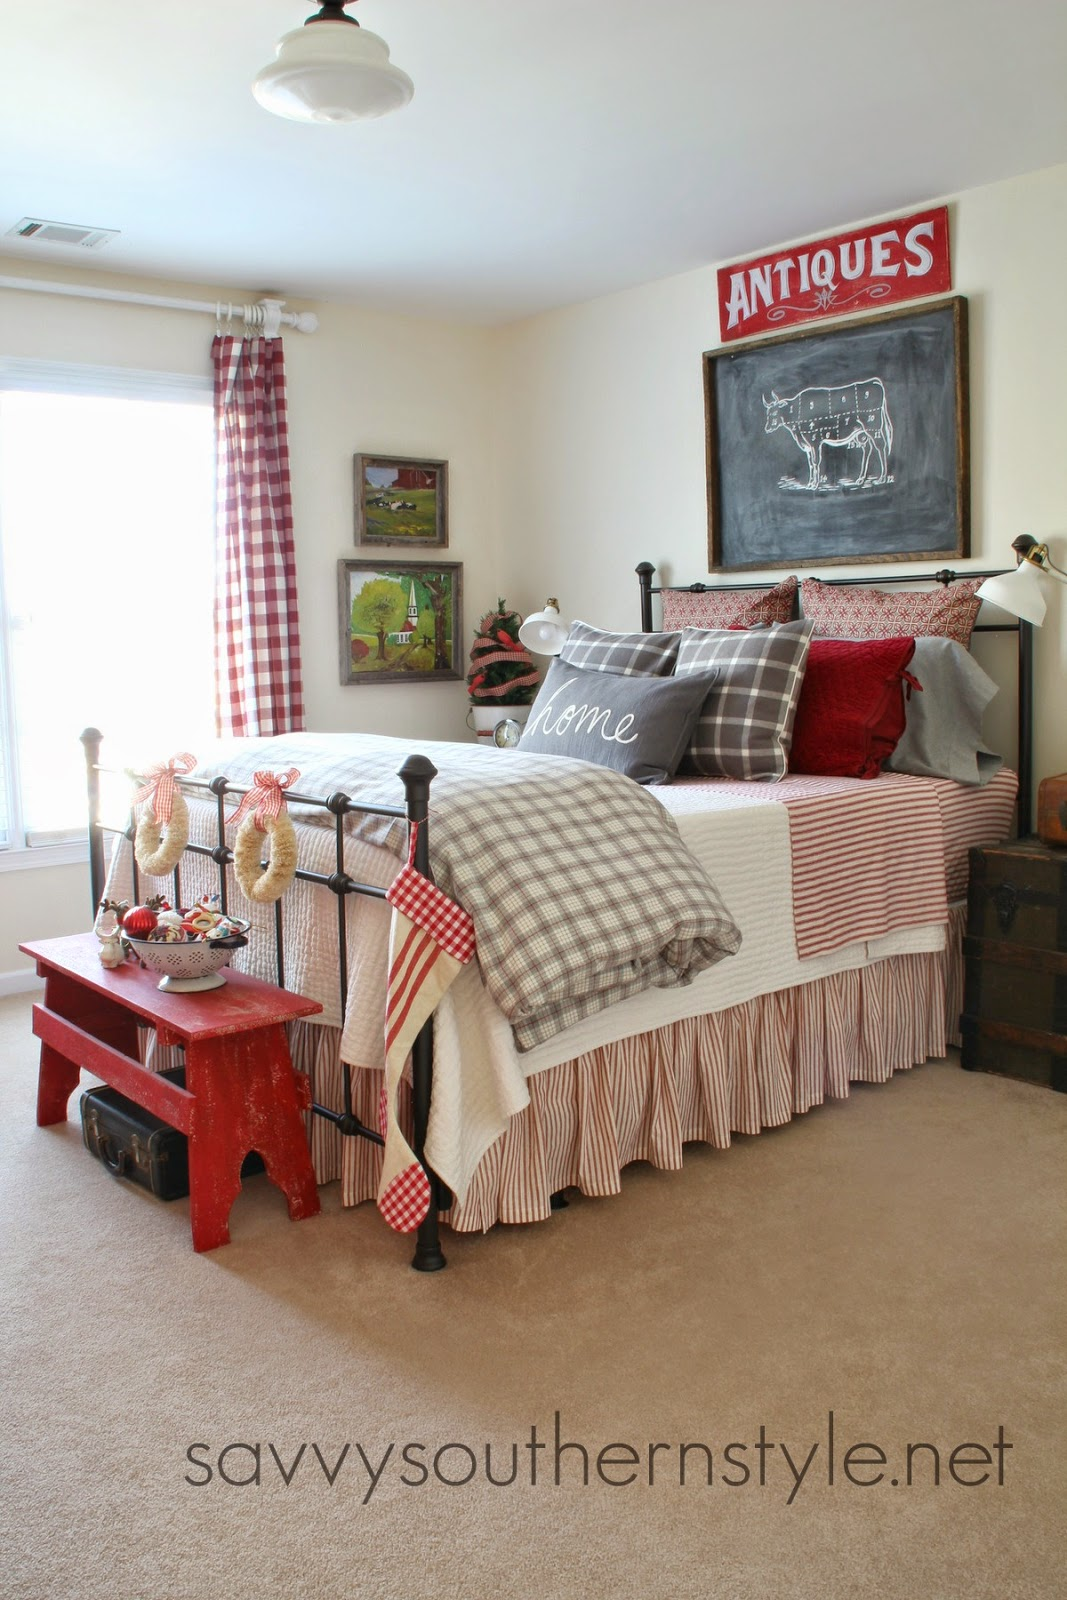 Fashion Inspired Guest Room: Savvy Southern Style: Farmhouse Guest Room Christmas